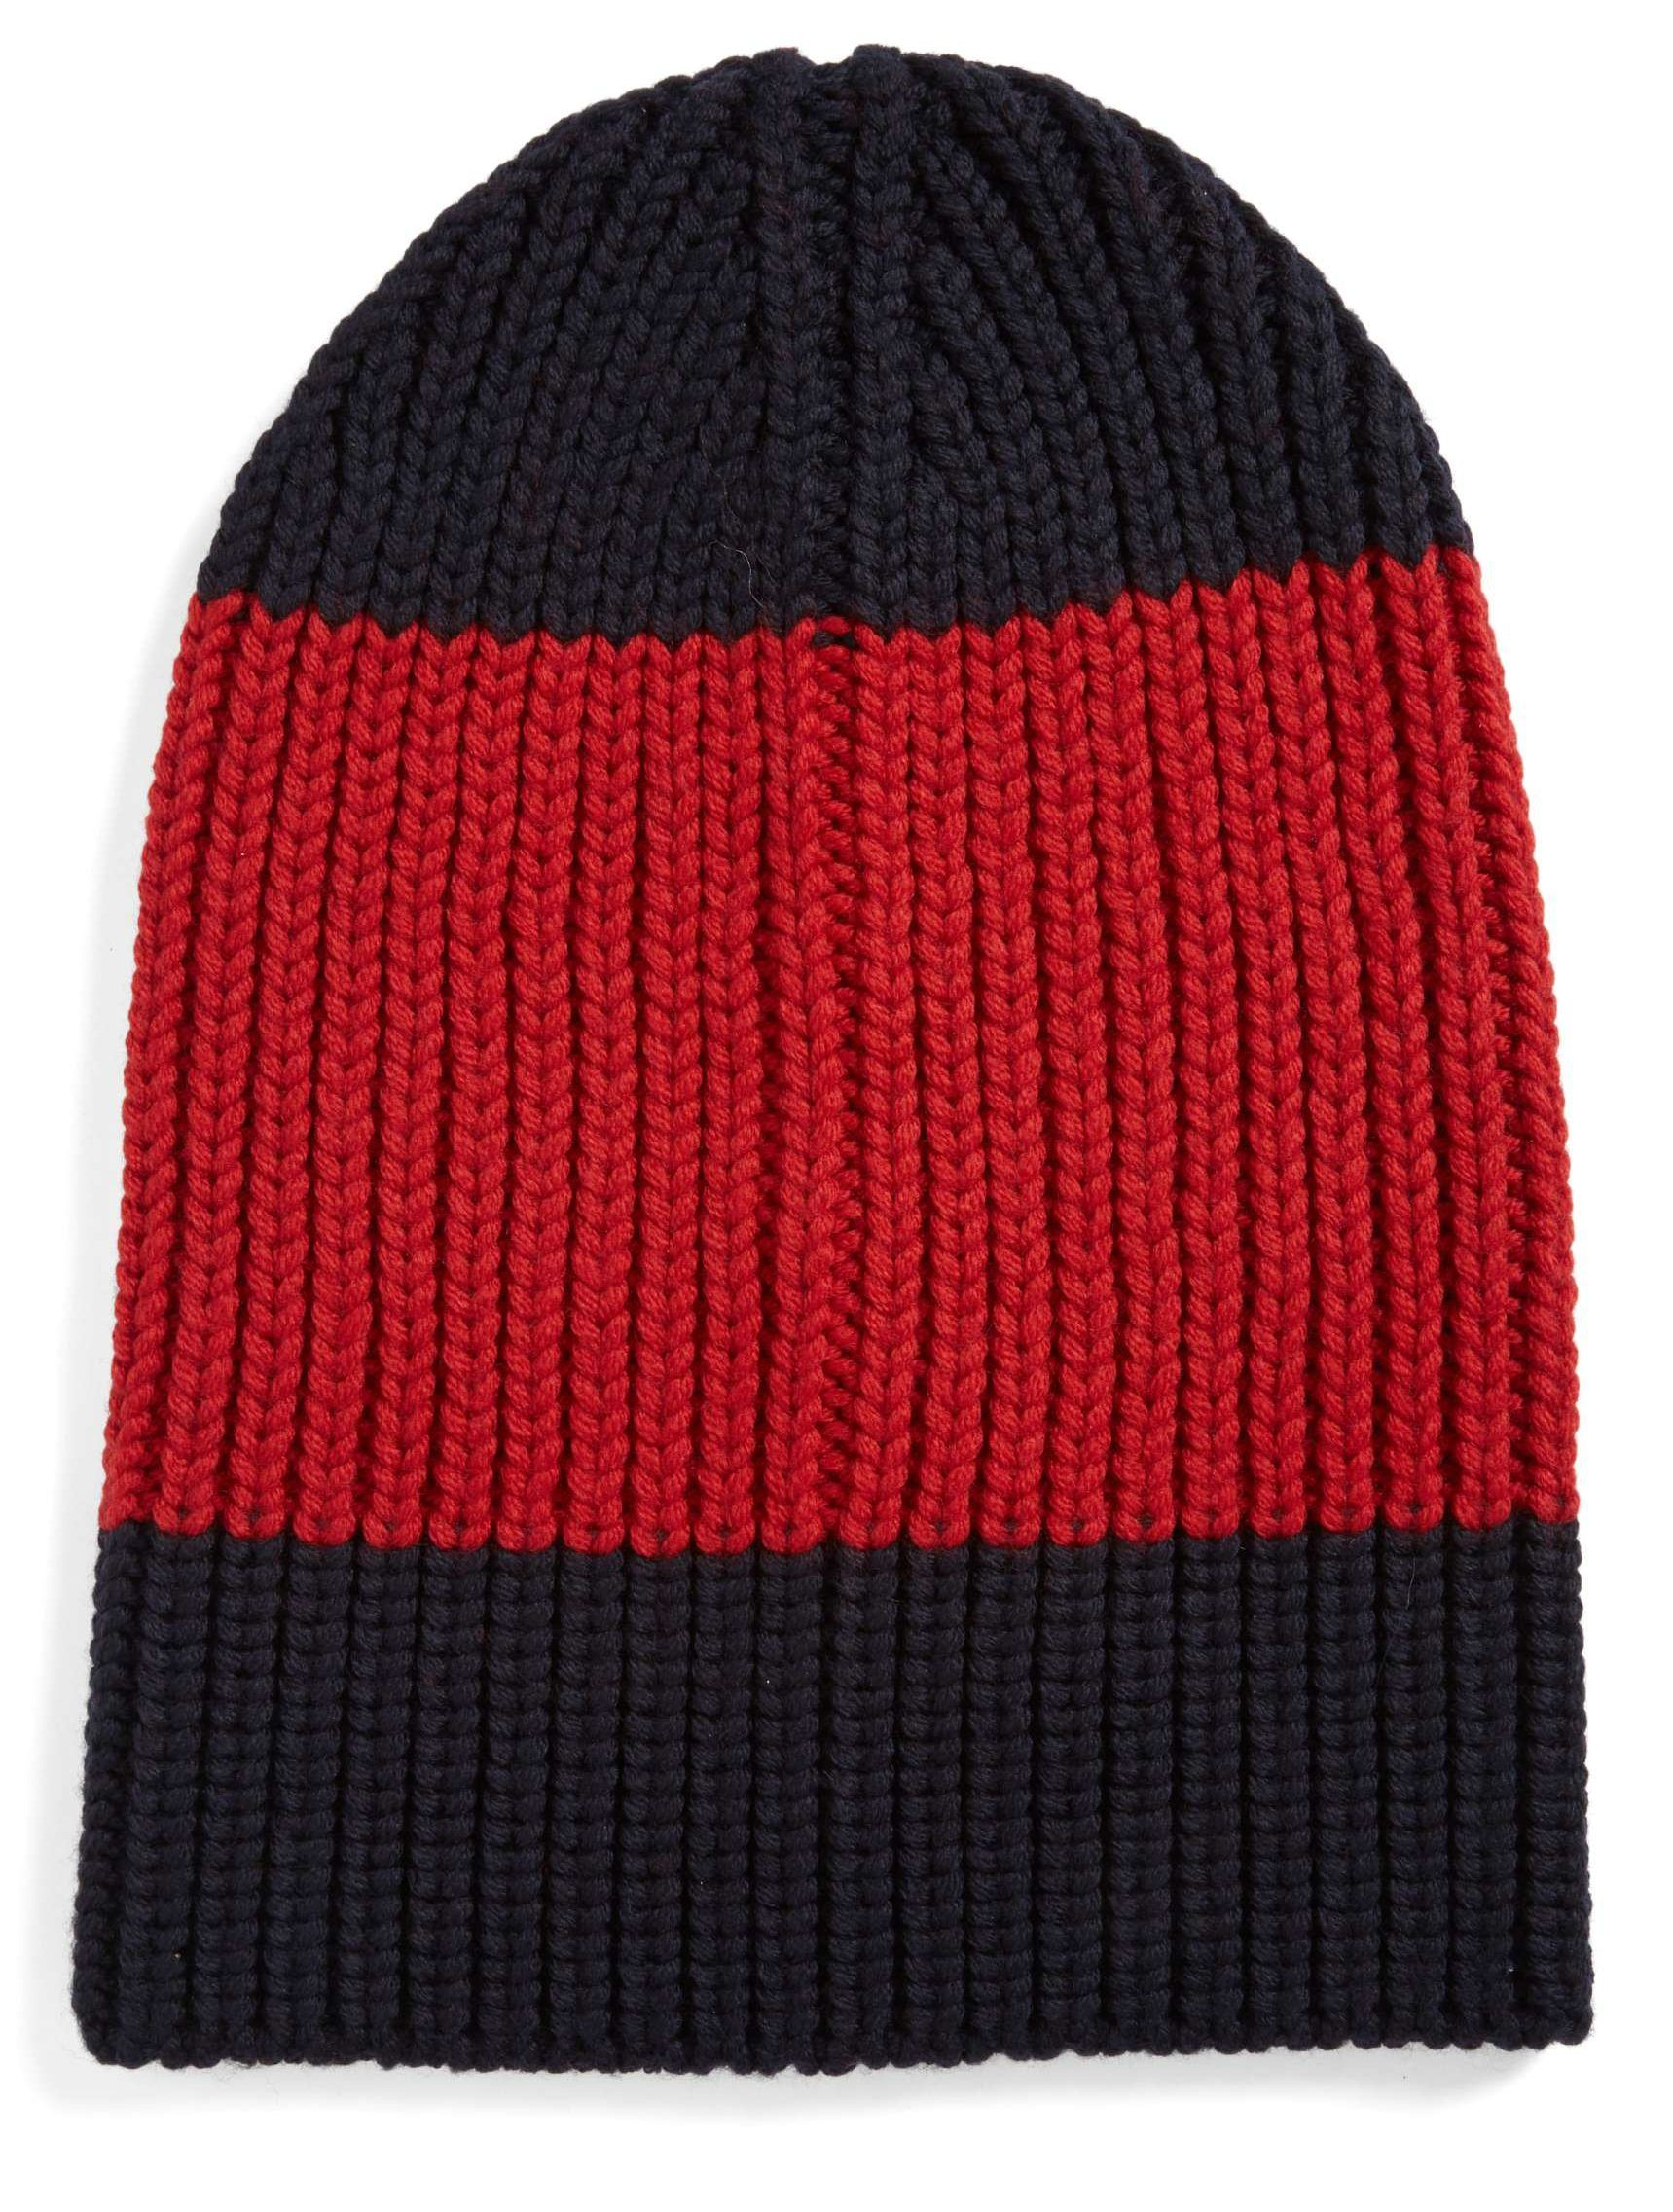 Best Mens Winter Beanies 2017  Gucci Colorblock Wool Hat 2018 ... b8a18d054db